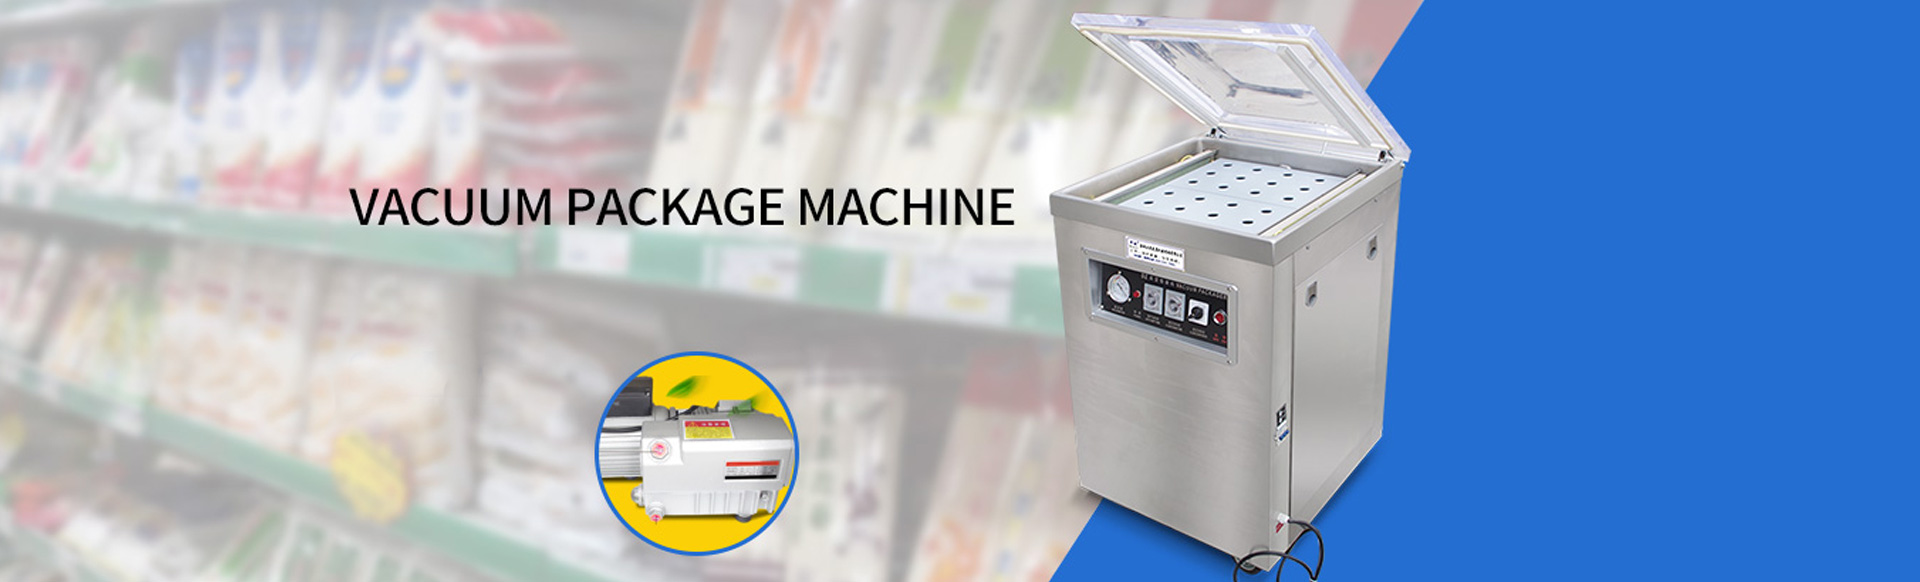 Vacuum Package Machine